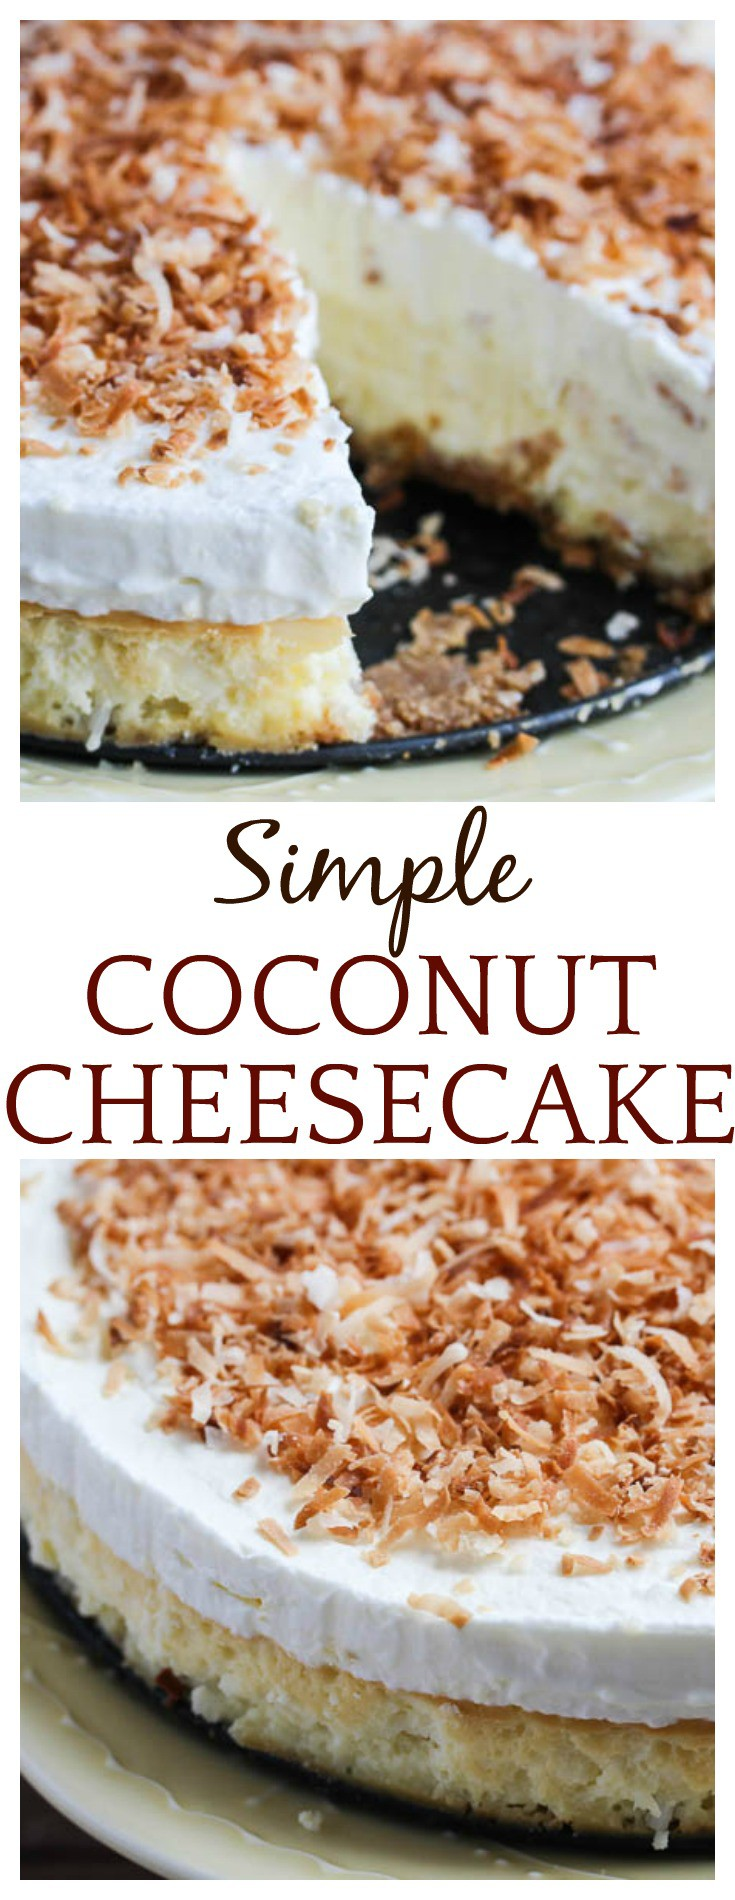 Do you love homemade cheesecake, but hate the hassle of making them? Try this Simple Coconut Cheesecake using The Cheesecake Factory at Home mix!So easy, so delicious! It's a delicious dessert recipe that's perfect for every occasion from holidays to just because! #ad #MyCheesecake #CheesecakeFactoryatHome #cheesecake #coconut #coconutcheesecake #baking #dessert #easyrecipe